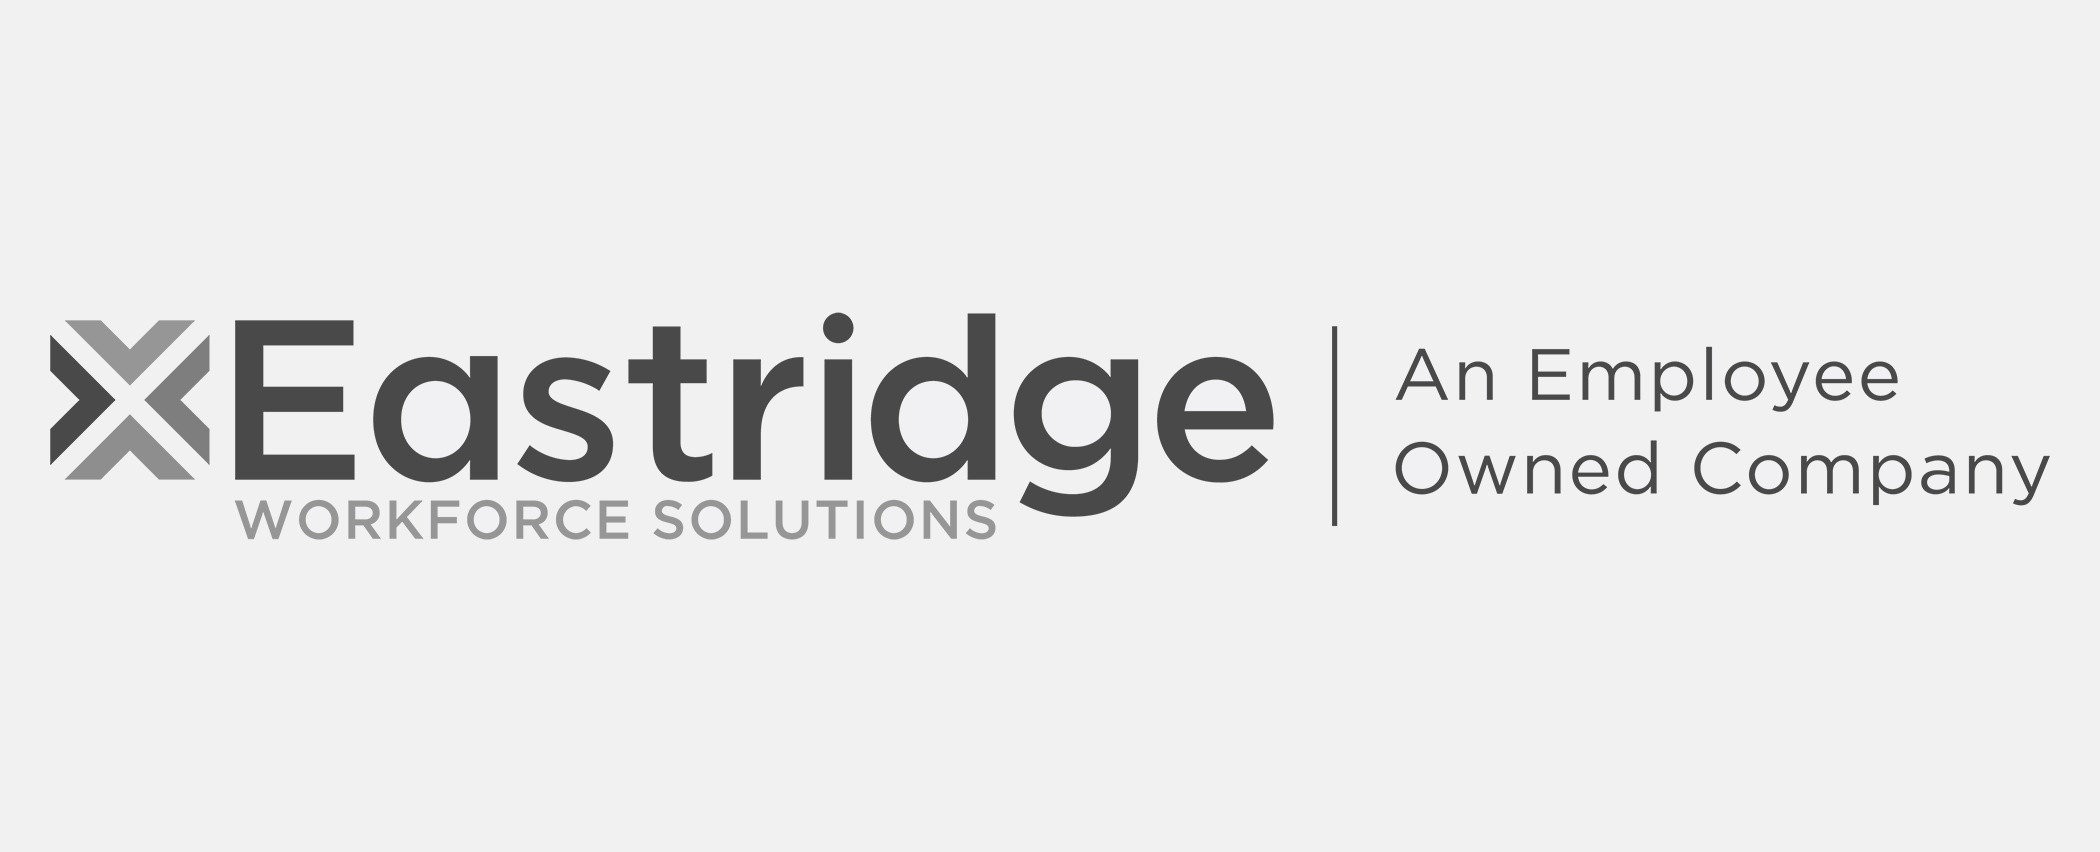 CEO Coaching International congratulates Eastridge Workforce Solutions